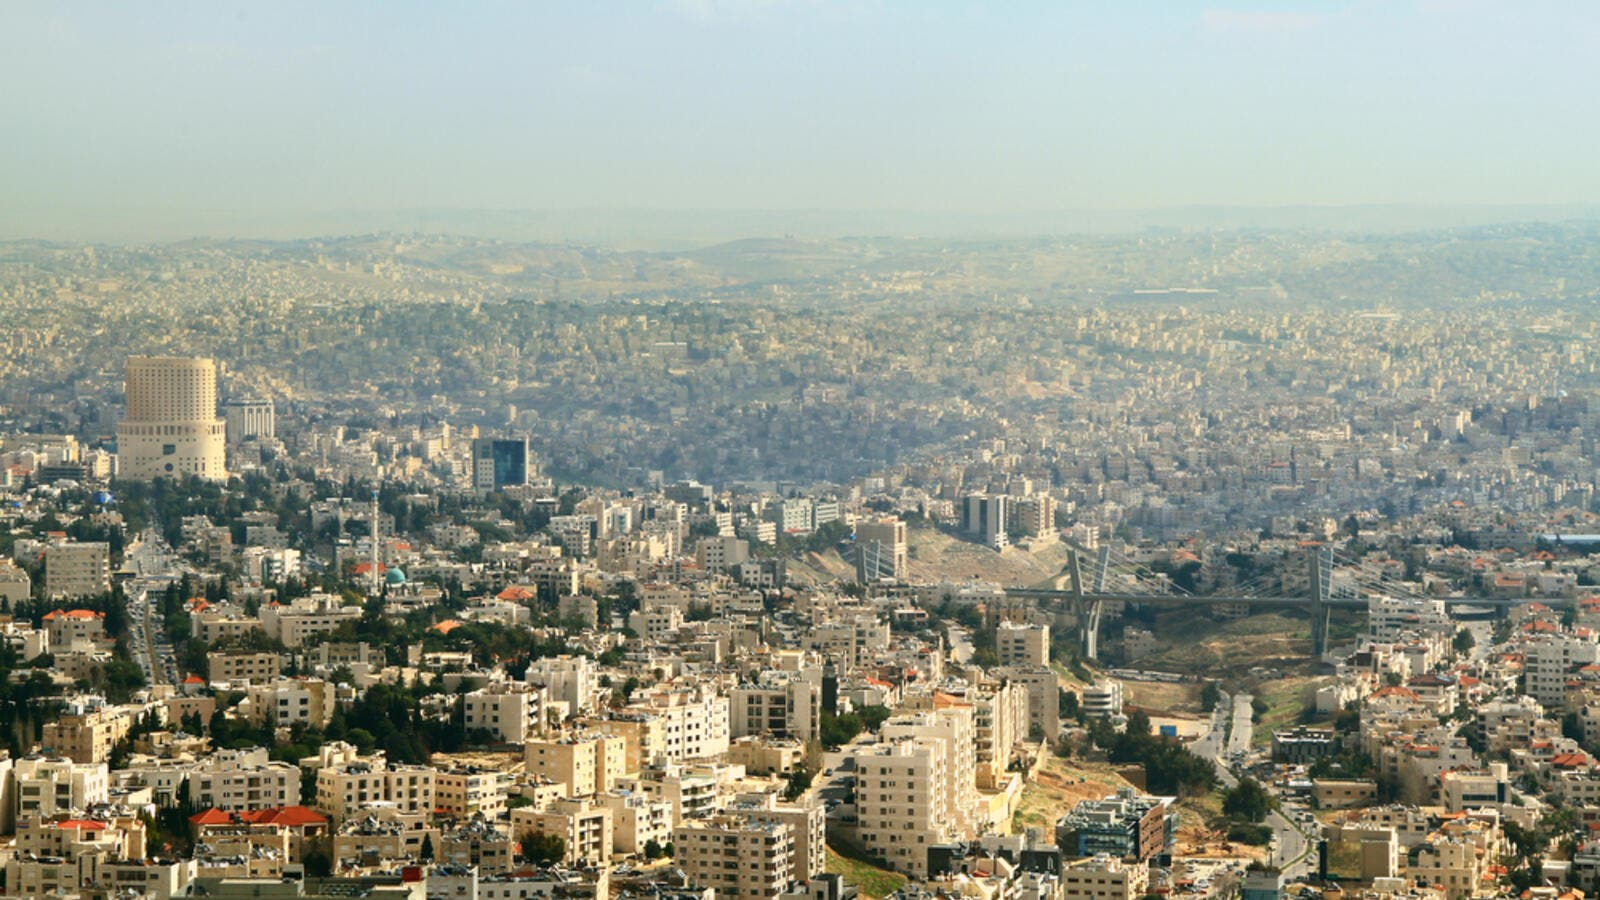 The view of Amman city (Shutterstock)